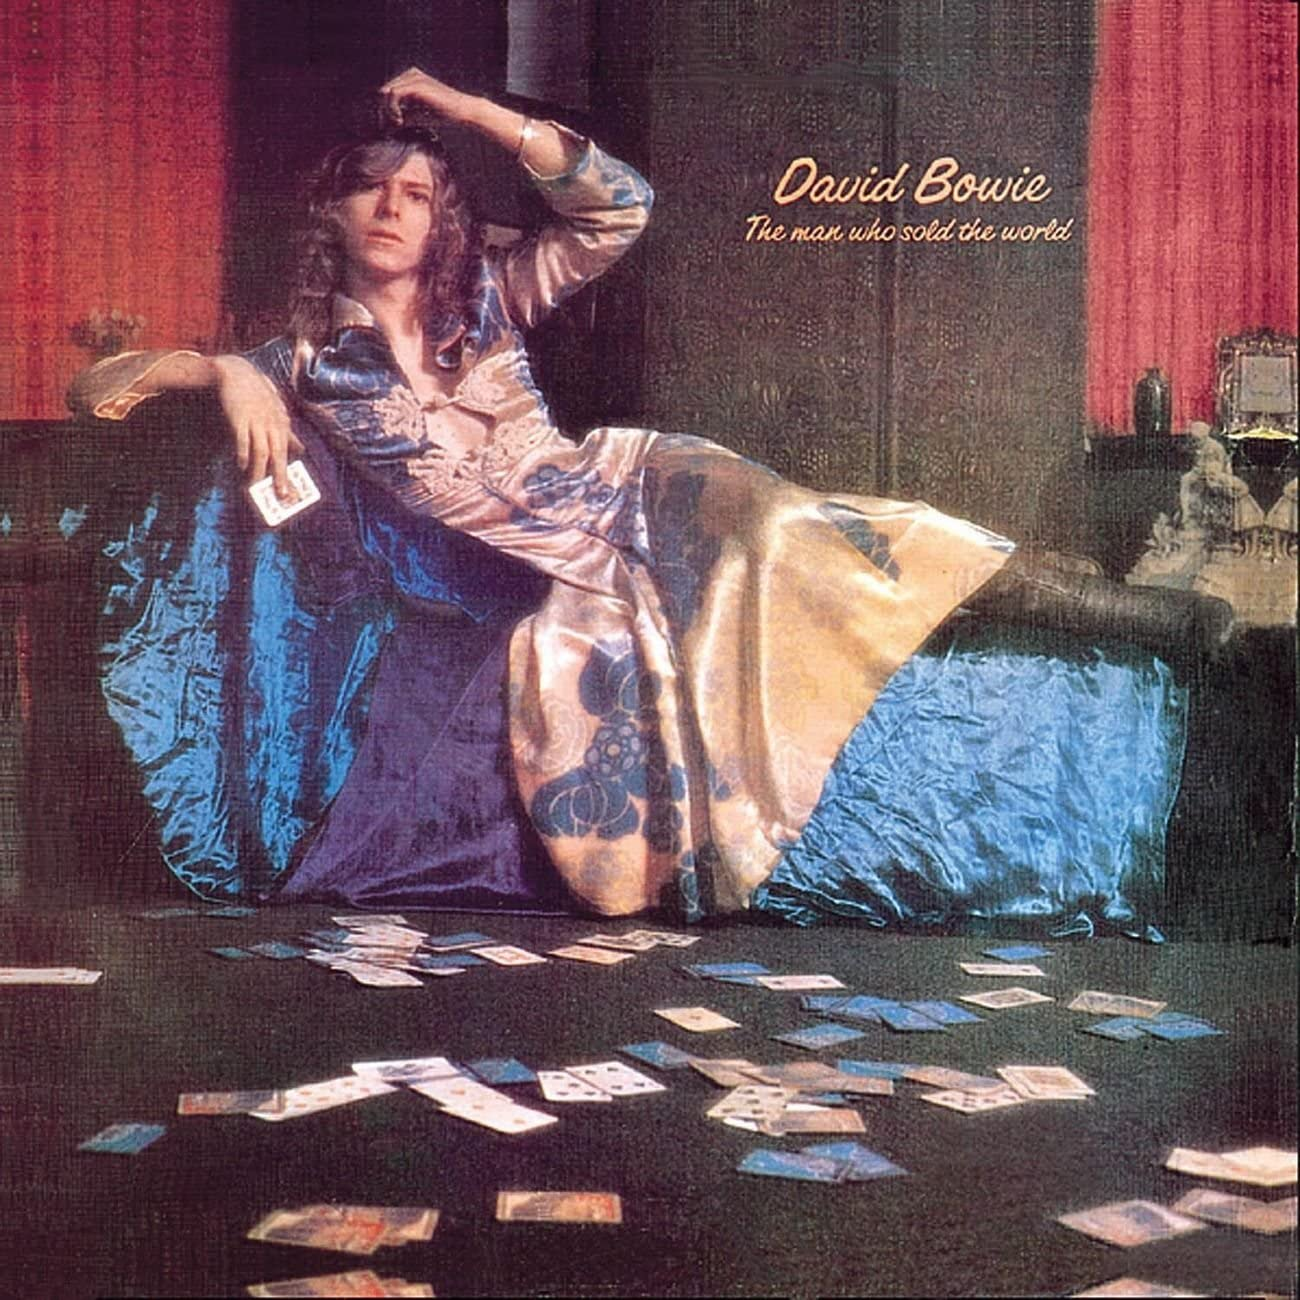 David Bowie - Vinyl The Man Who Sold The World